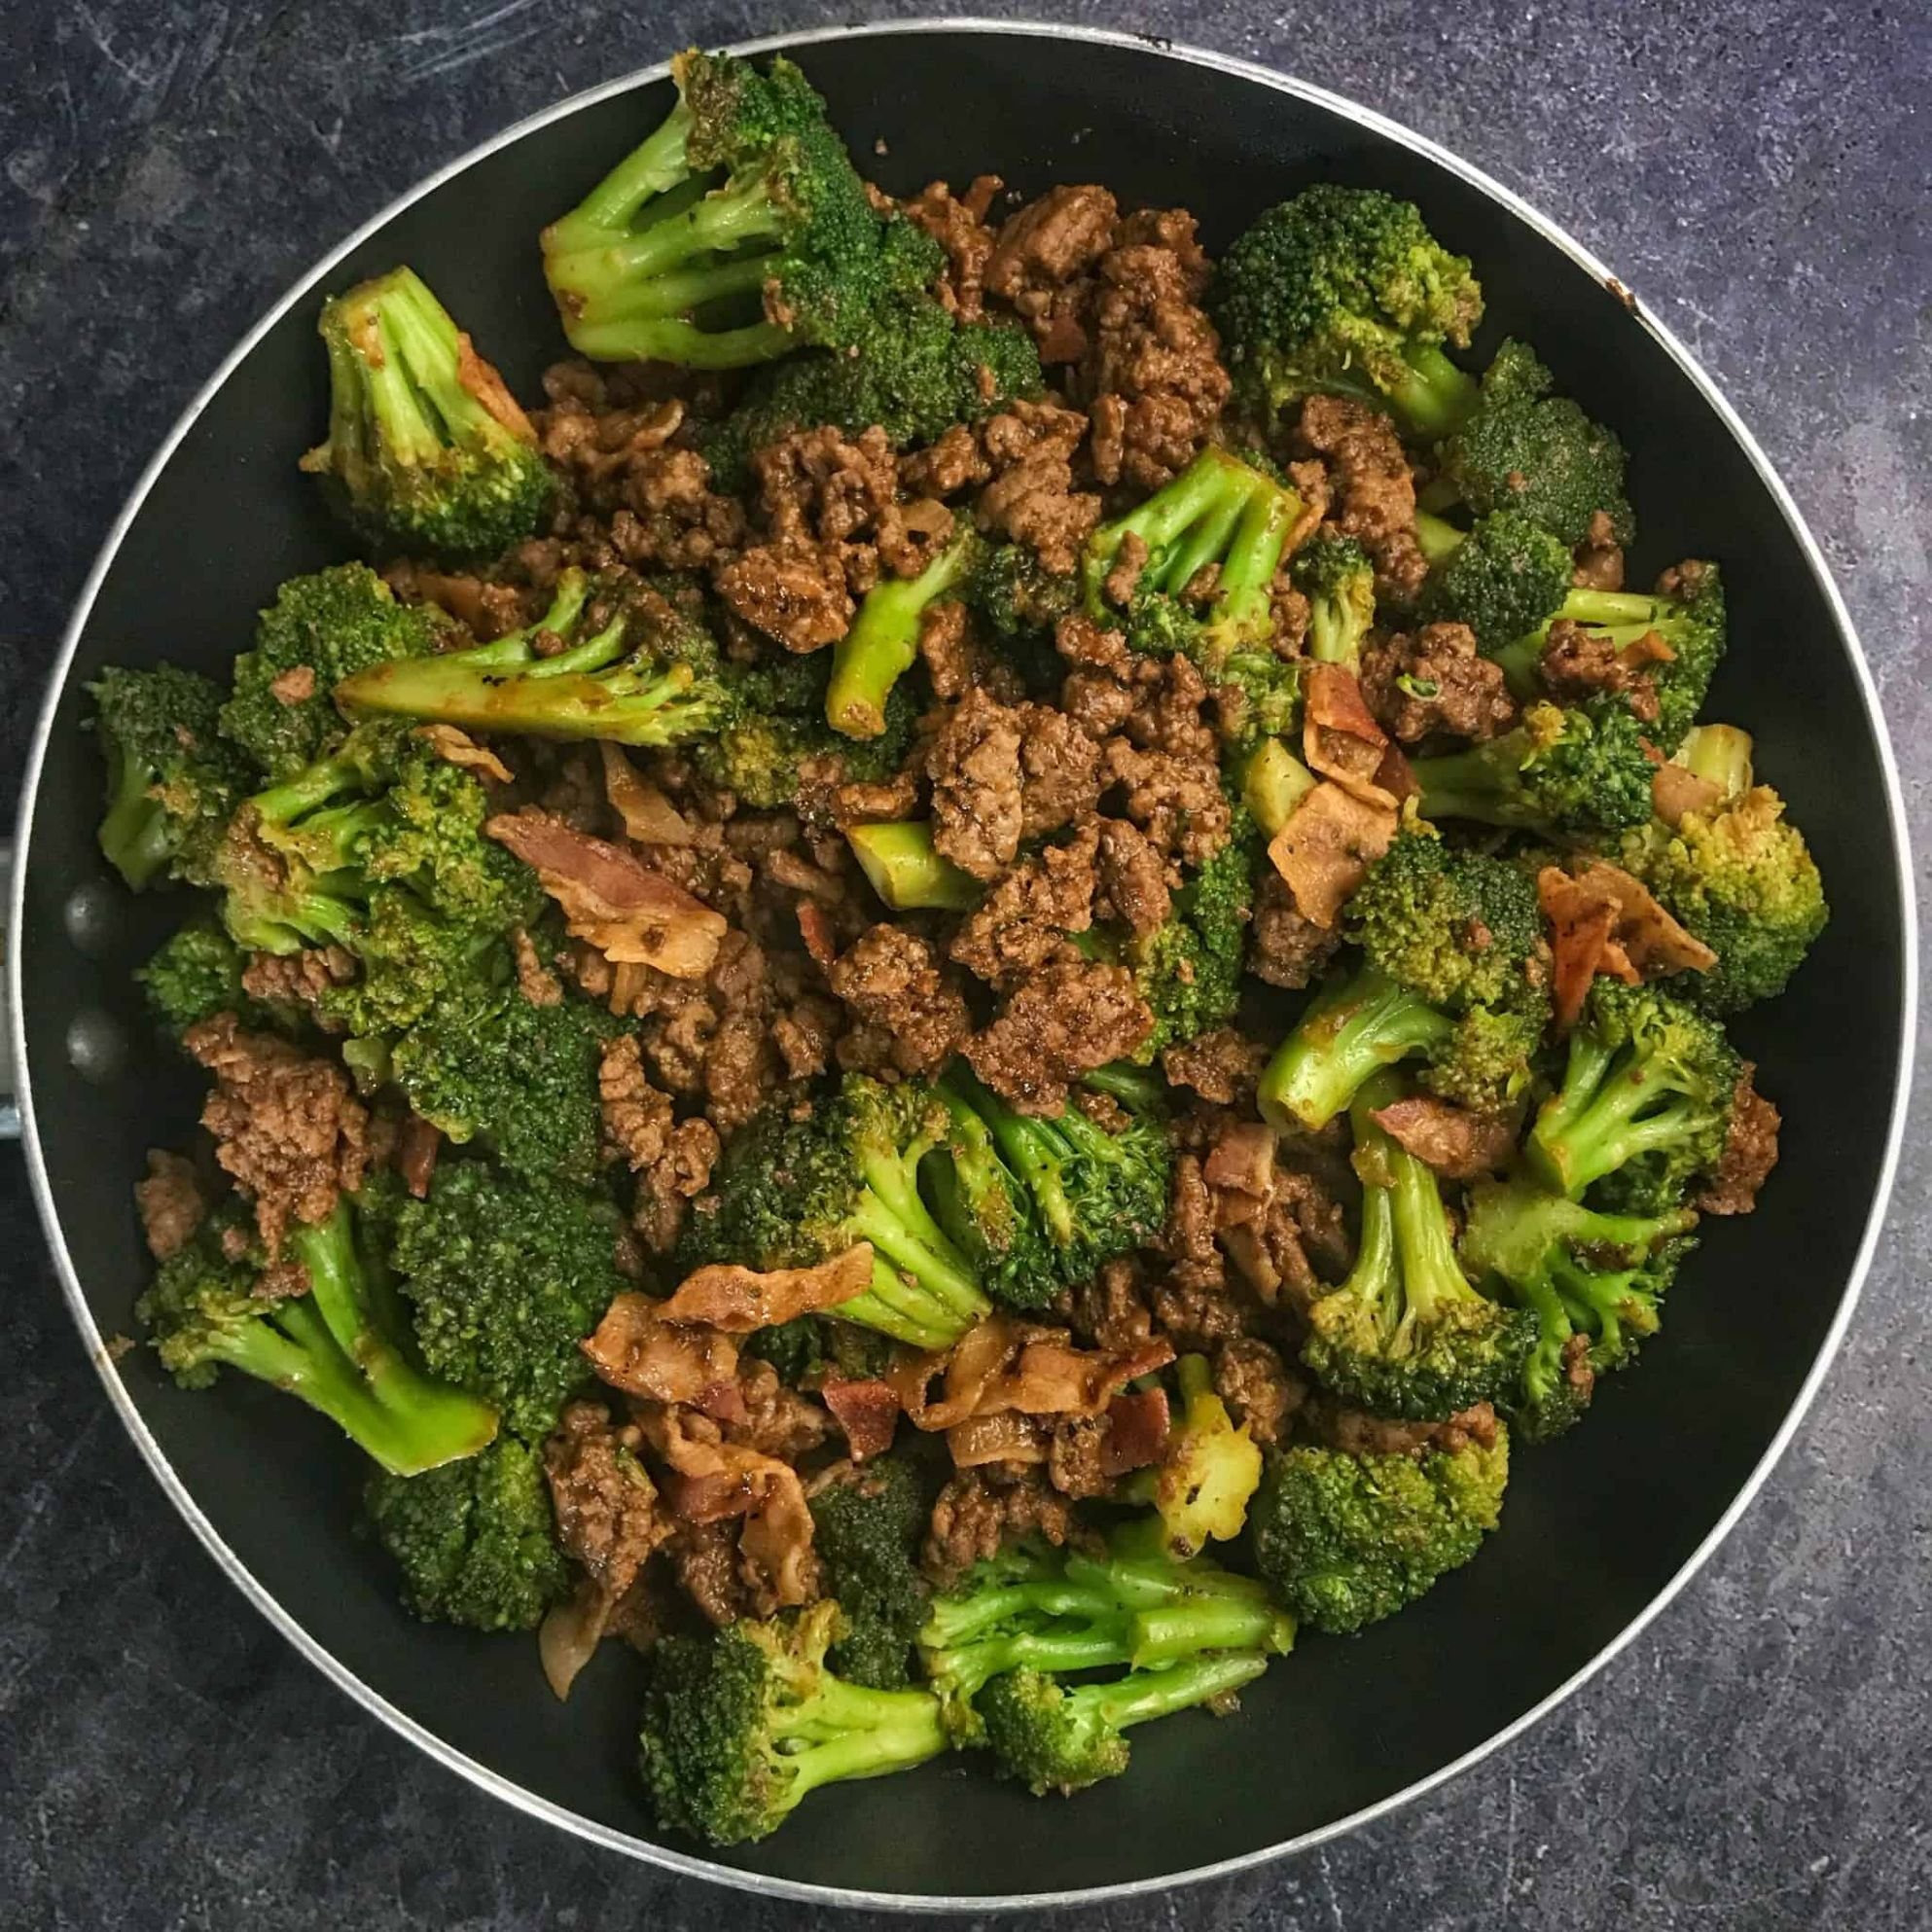 Sticky Sweet Ground Beef and Broccoli - Healthy Recipes Using Ground Beef